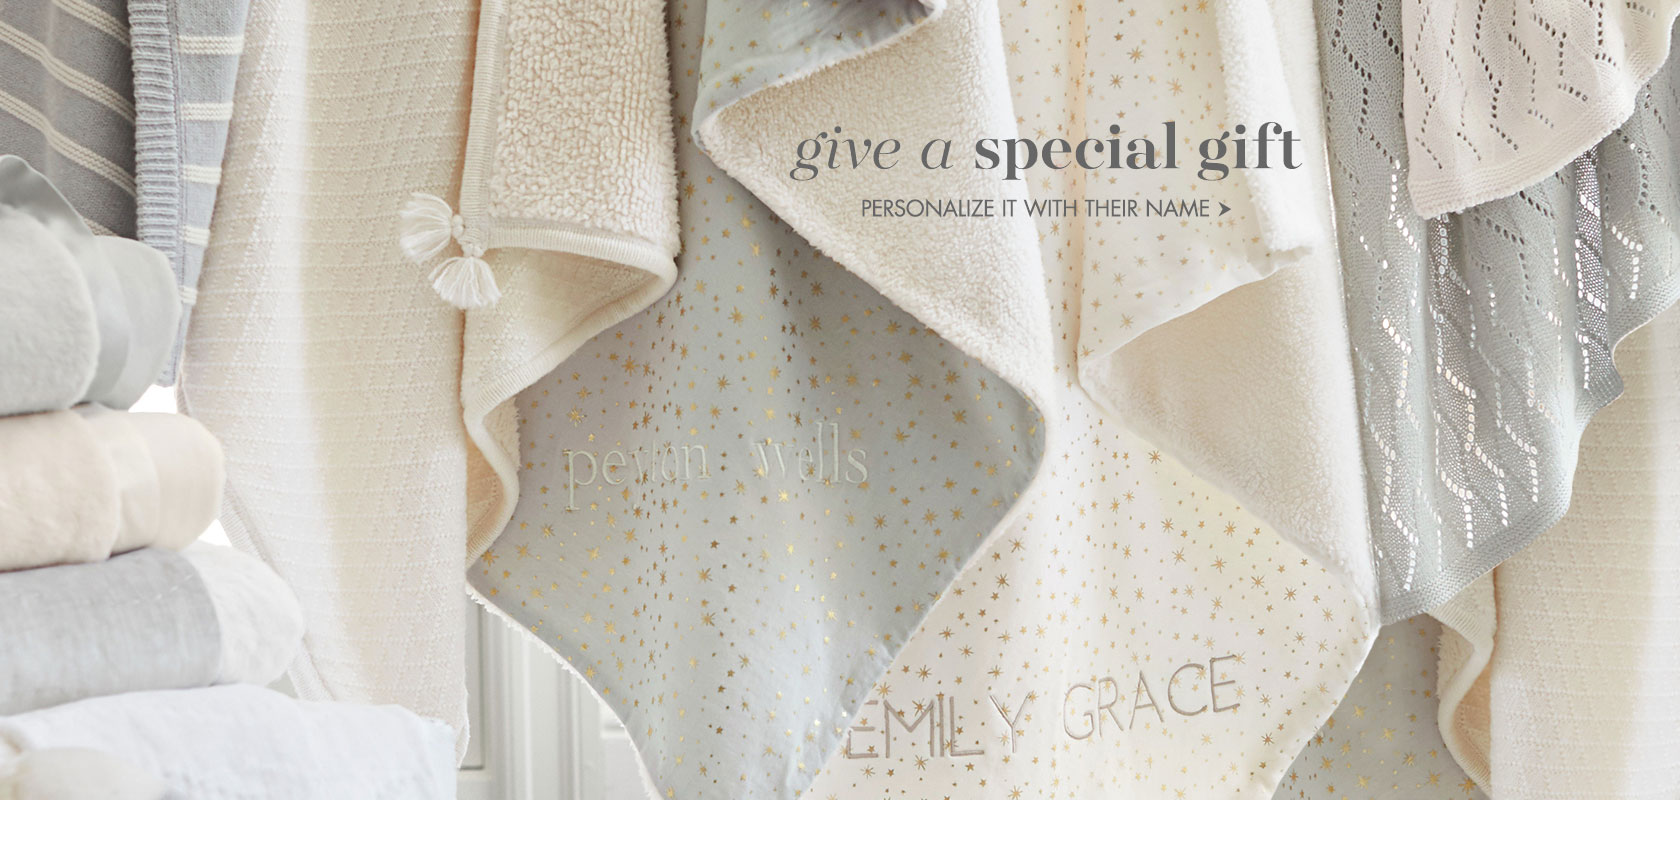 Give a special gift